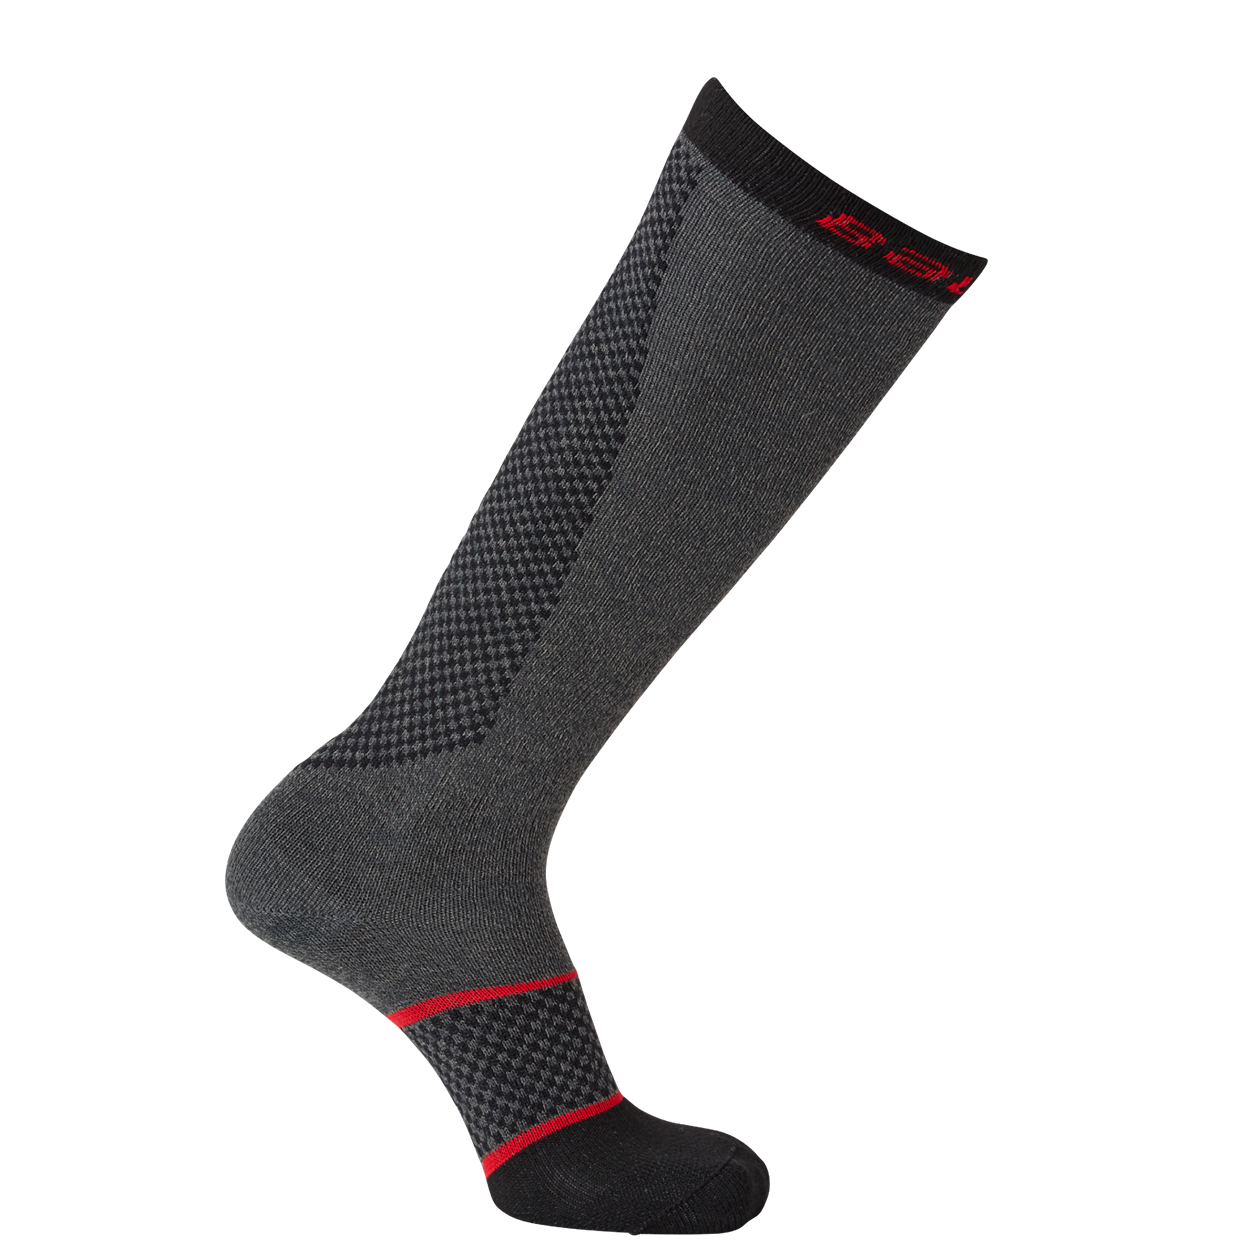 S19 PRO CUT RESIST Tall Skate Sock,,Medium